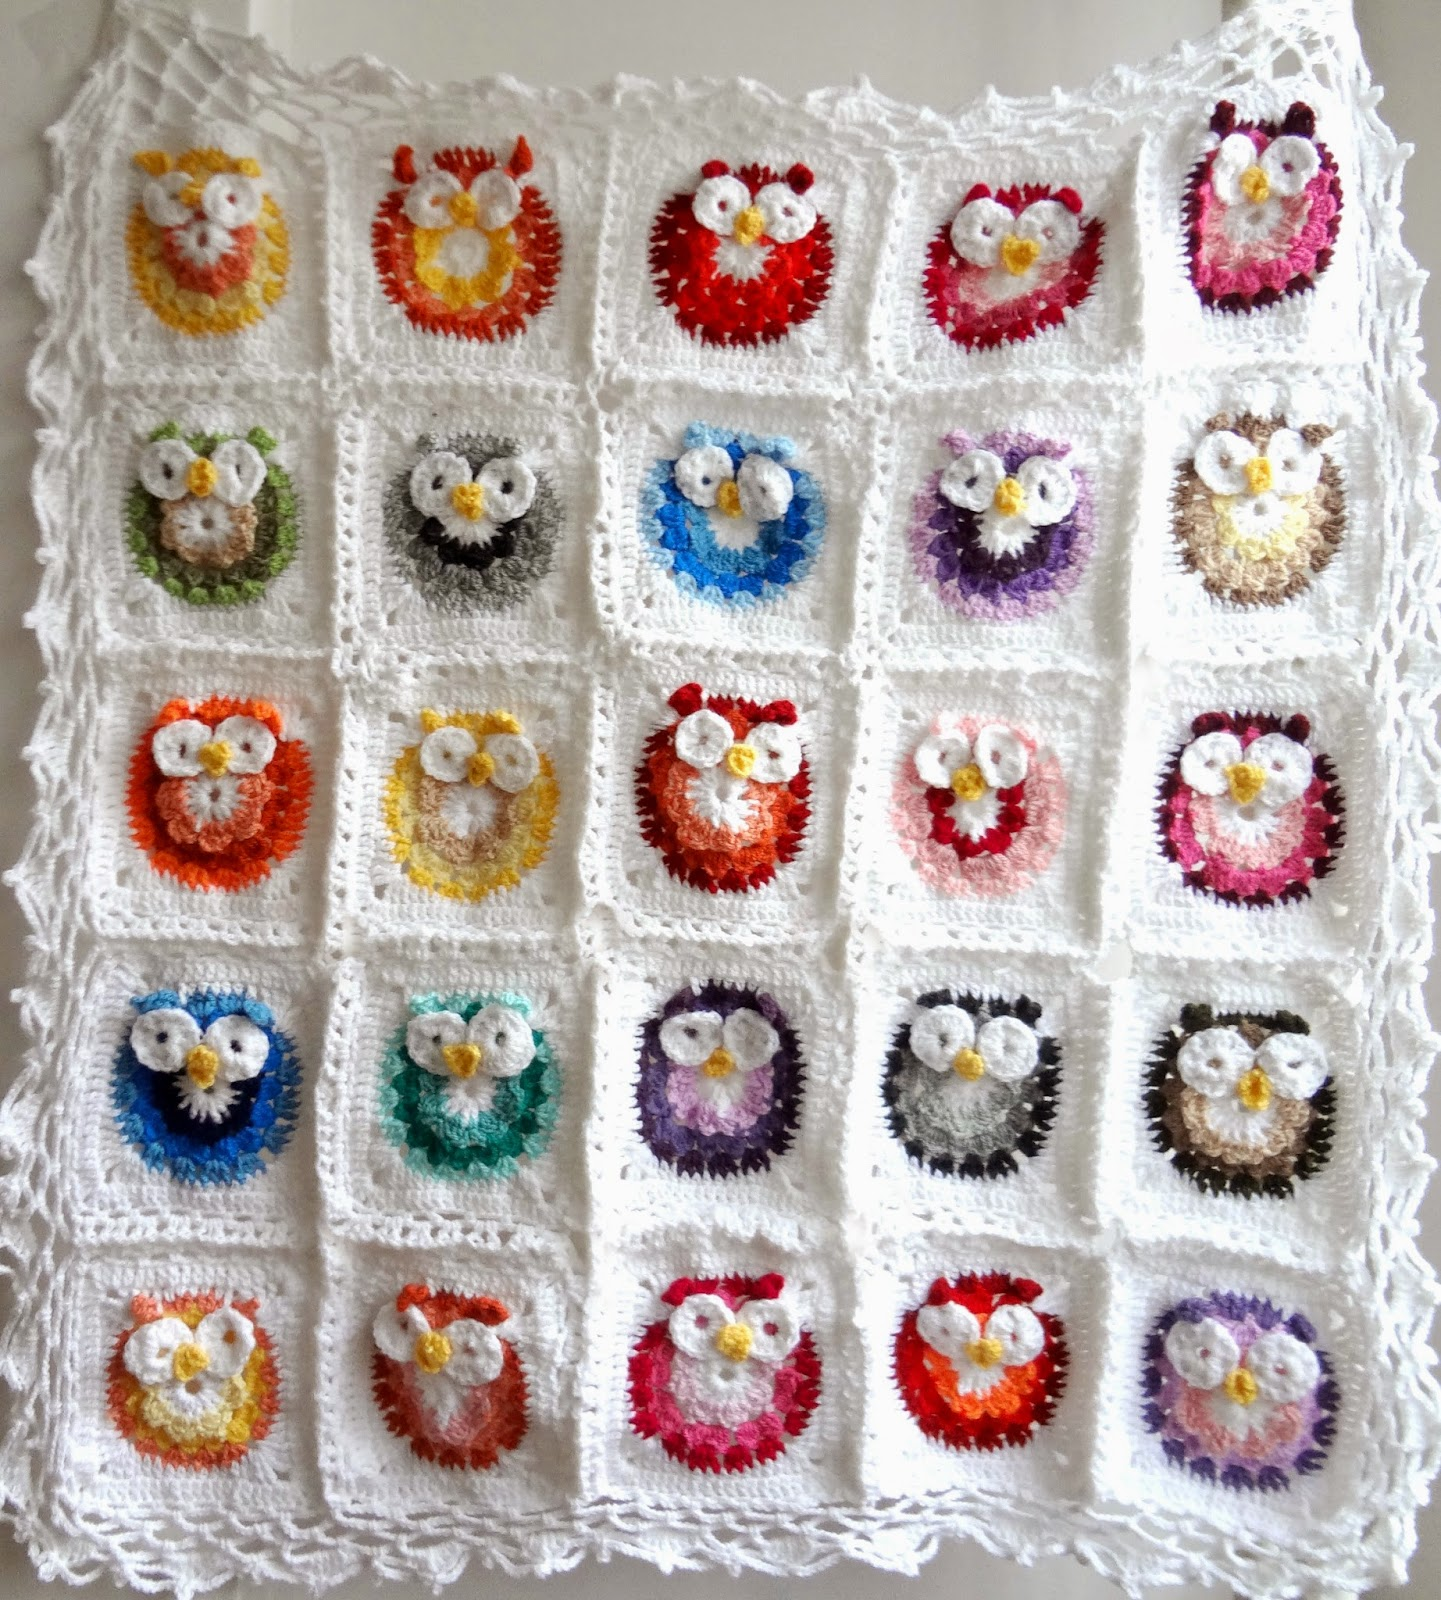 Crochet Owl Blanket : Little Treasures: Crochet Owl Blanket Pattern